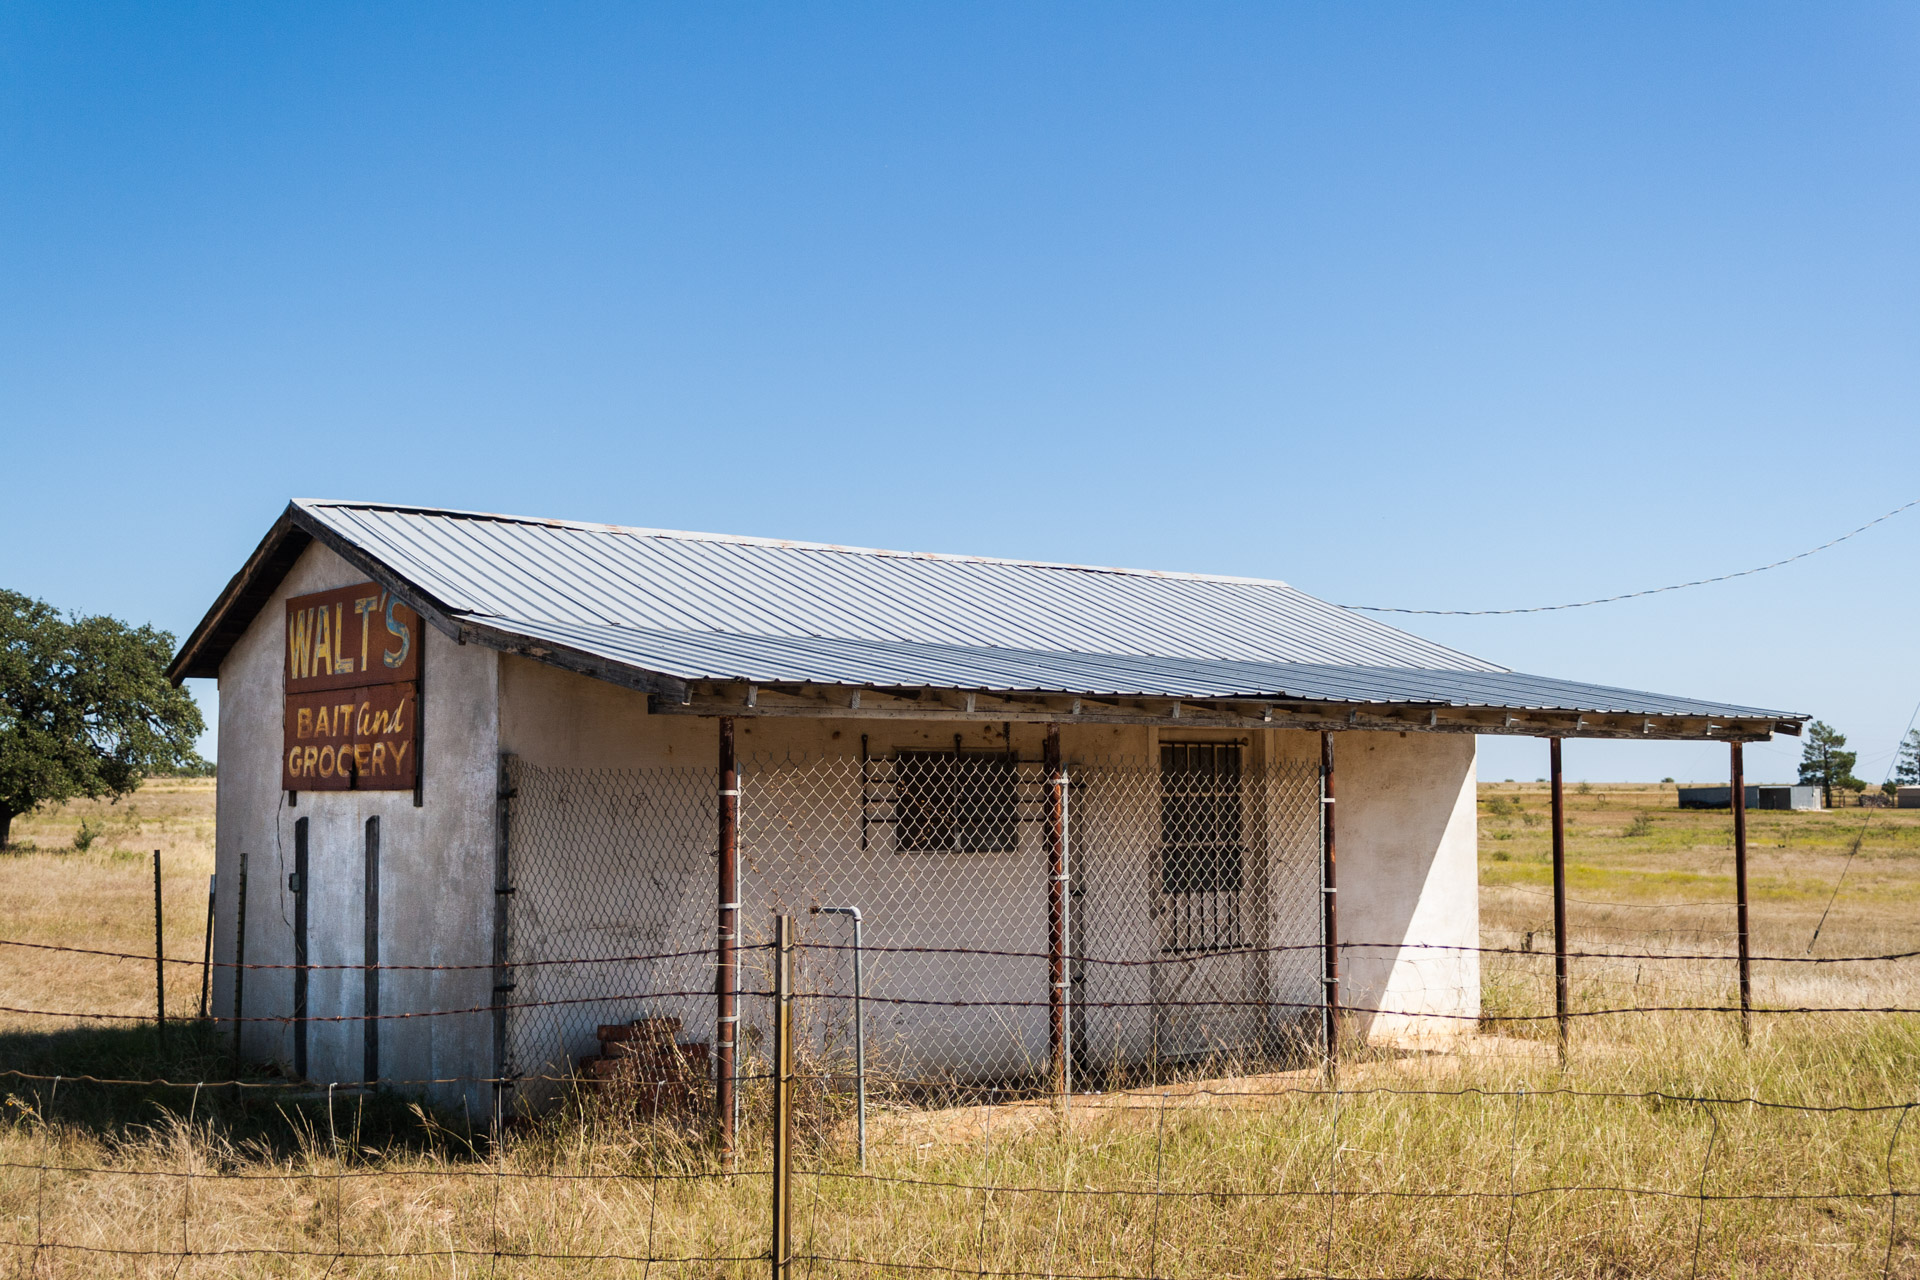 Coleman, Texas - Walt's Bait and Grocery